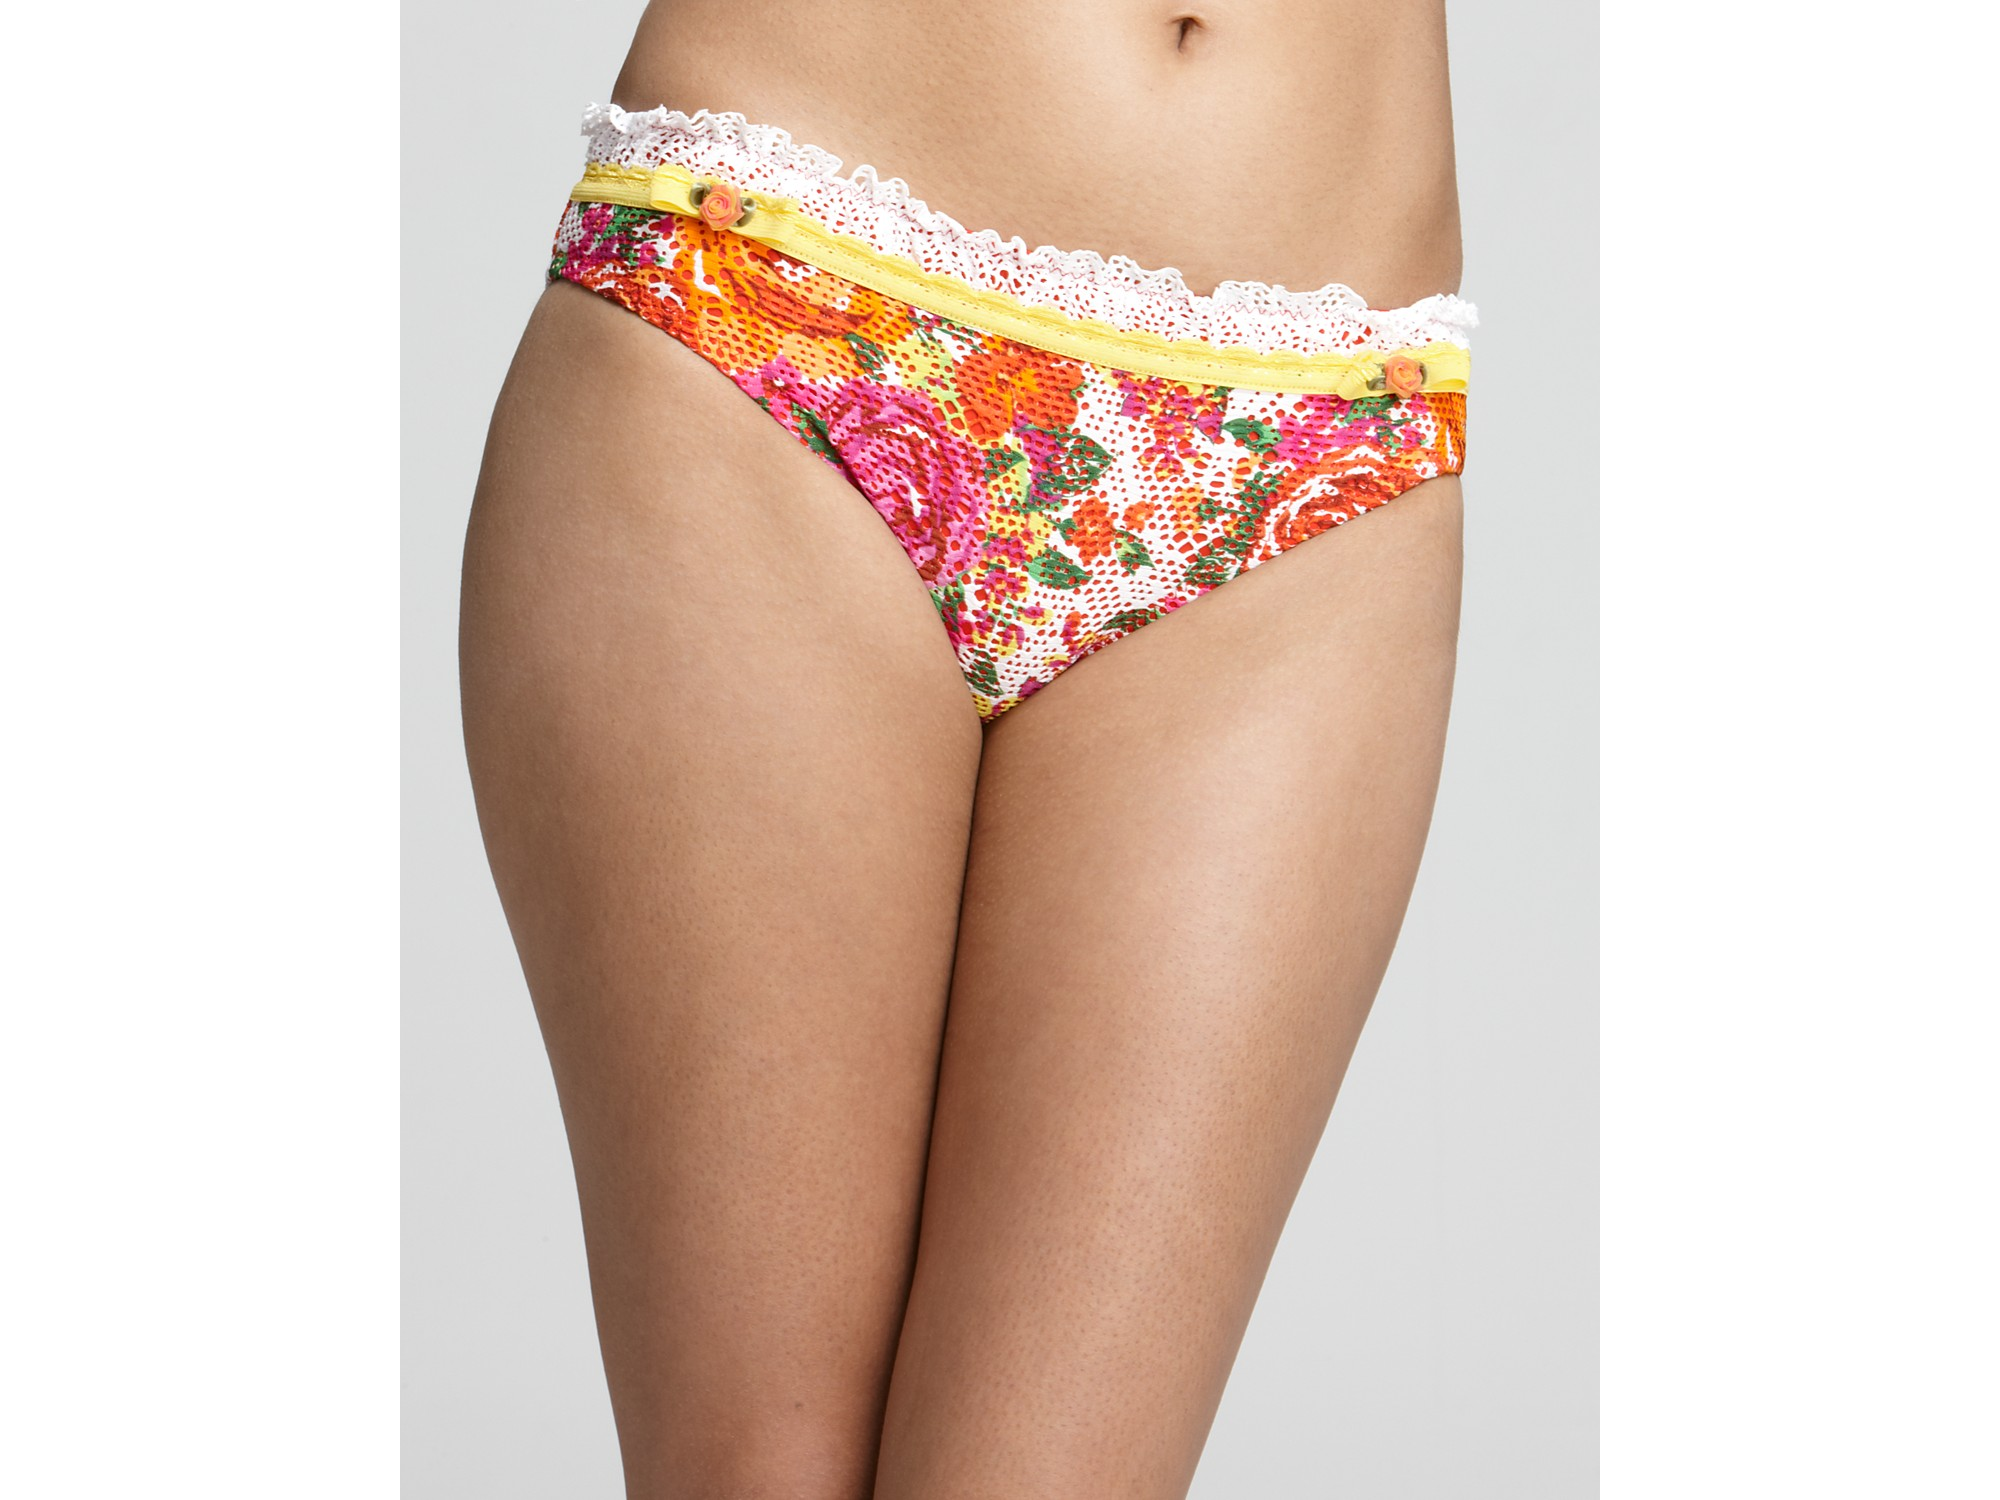 Johnson Cheeky Peeky Bikini Bottoms